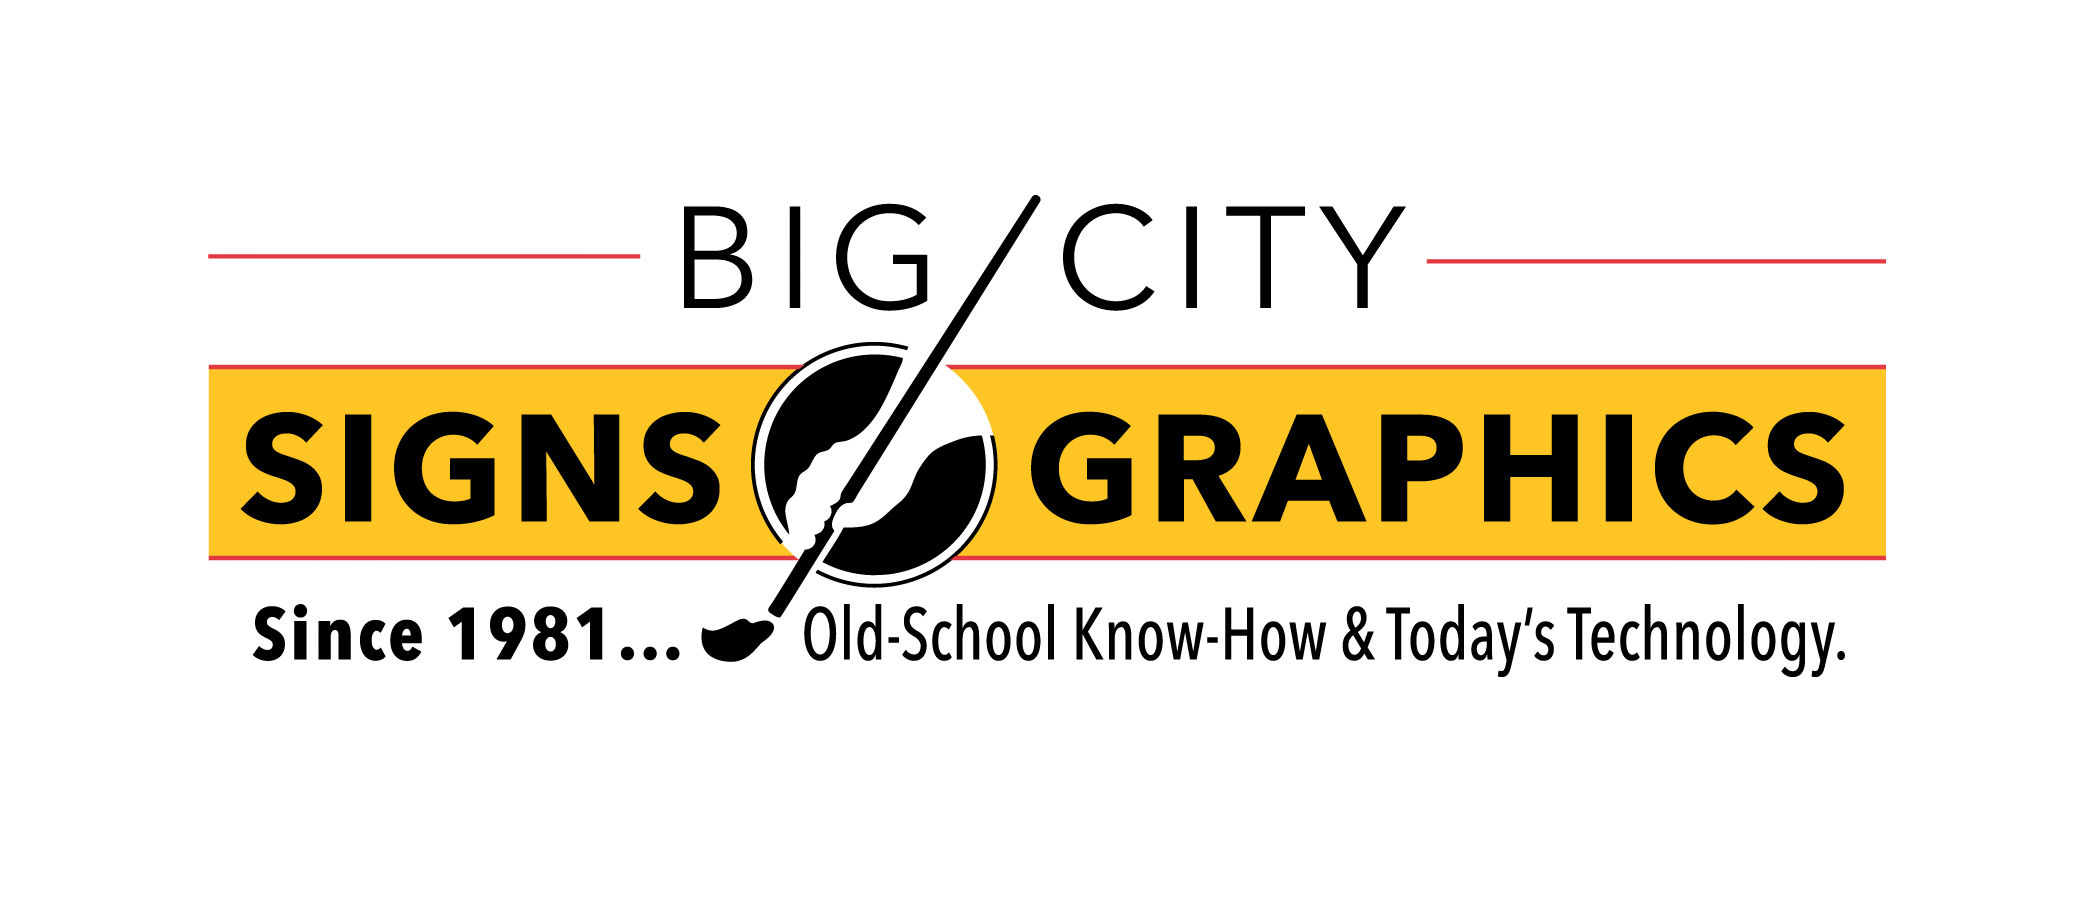 Big City Signs | Graphics